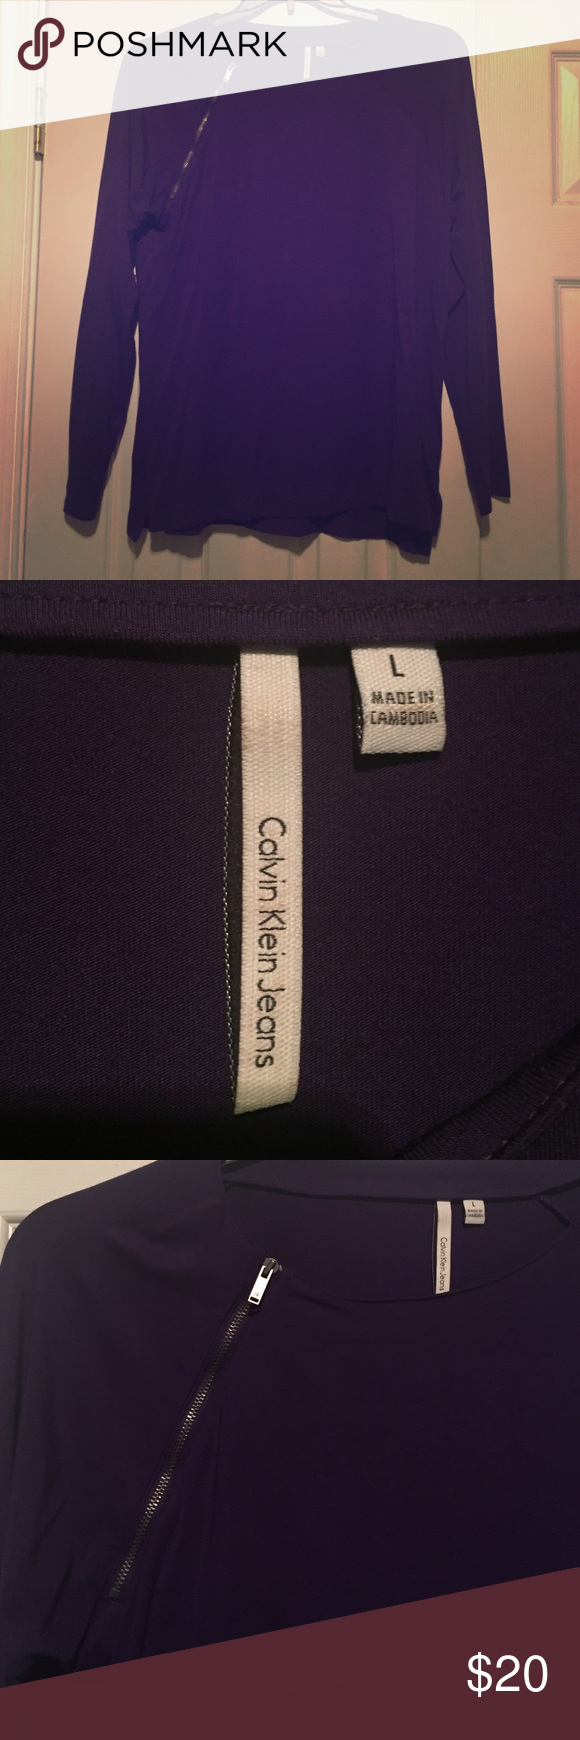 Calvin Klein Purple blouse Calvin Klein purple blouse with zipper embellishment on left front.  Worn only once. Calvin Klein Collection Tops Blouses